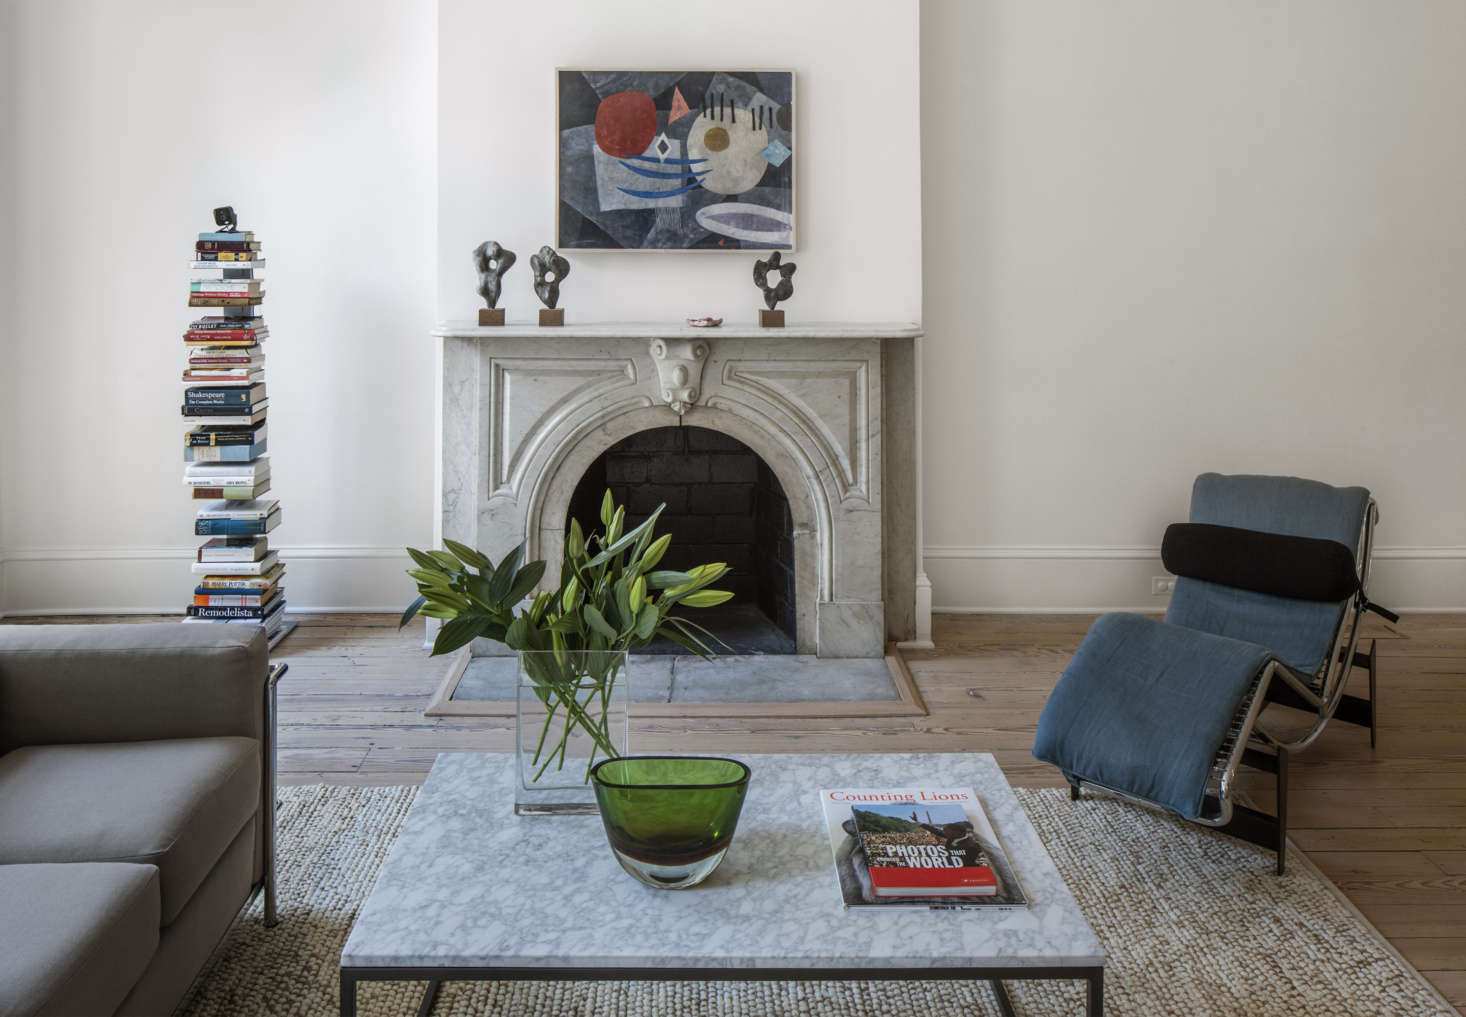 Margot visits the elegant townhouse of two DC insiders in Freedom of the Press: Inside Former Washington Post Editor Ben Bradlee's Georgetown House. Photograph by Richard Barnes, courtesy of Lauren Wegel.